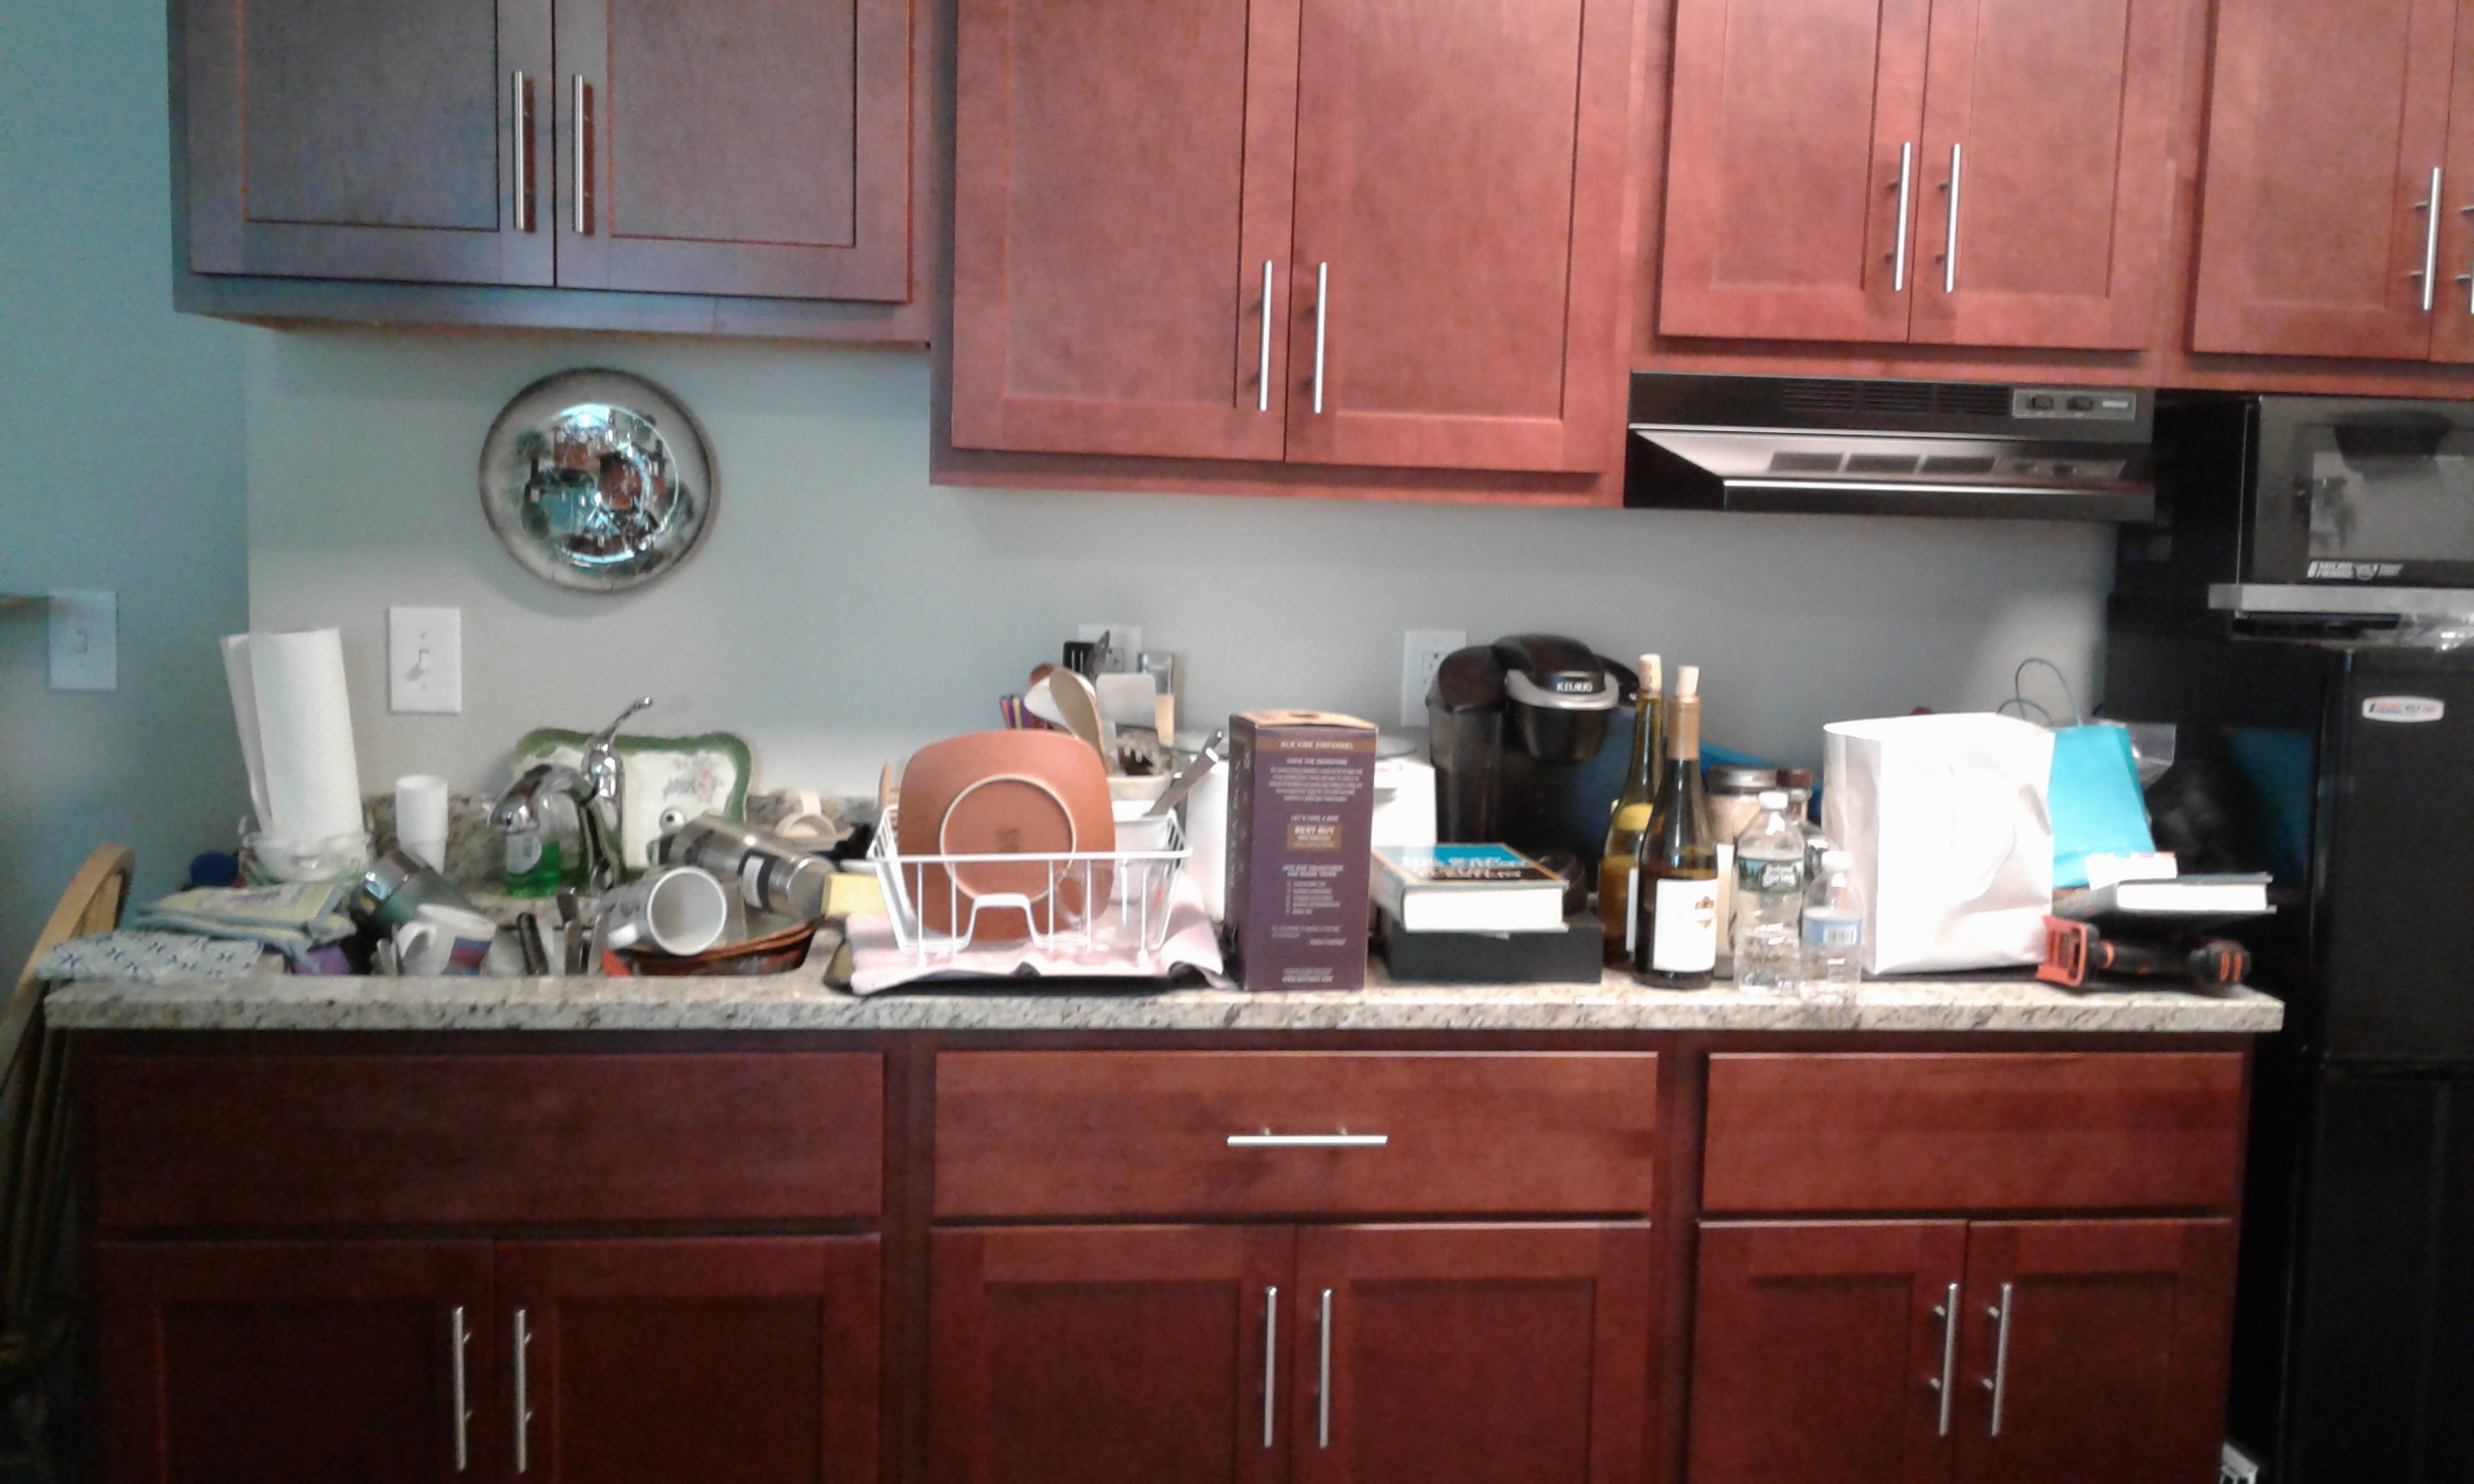 kitchenette counter before